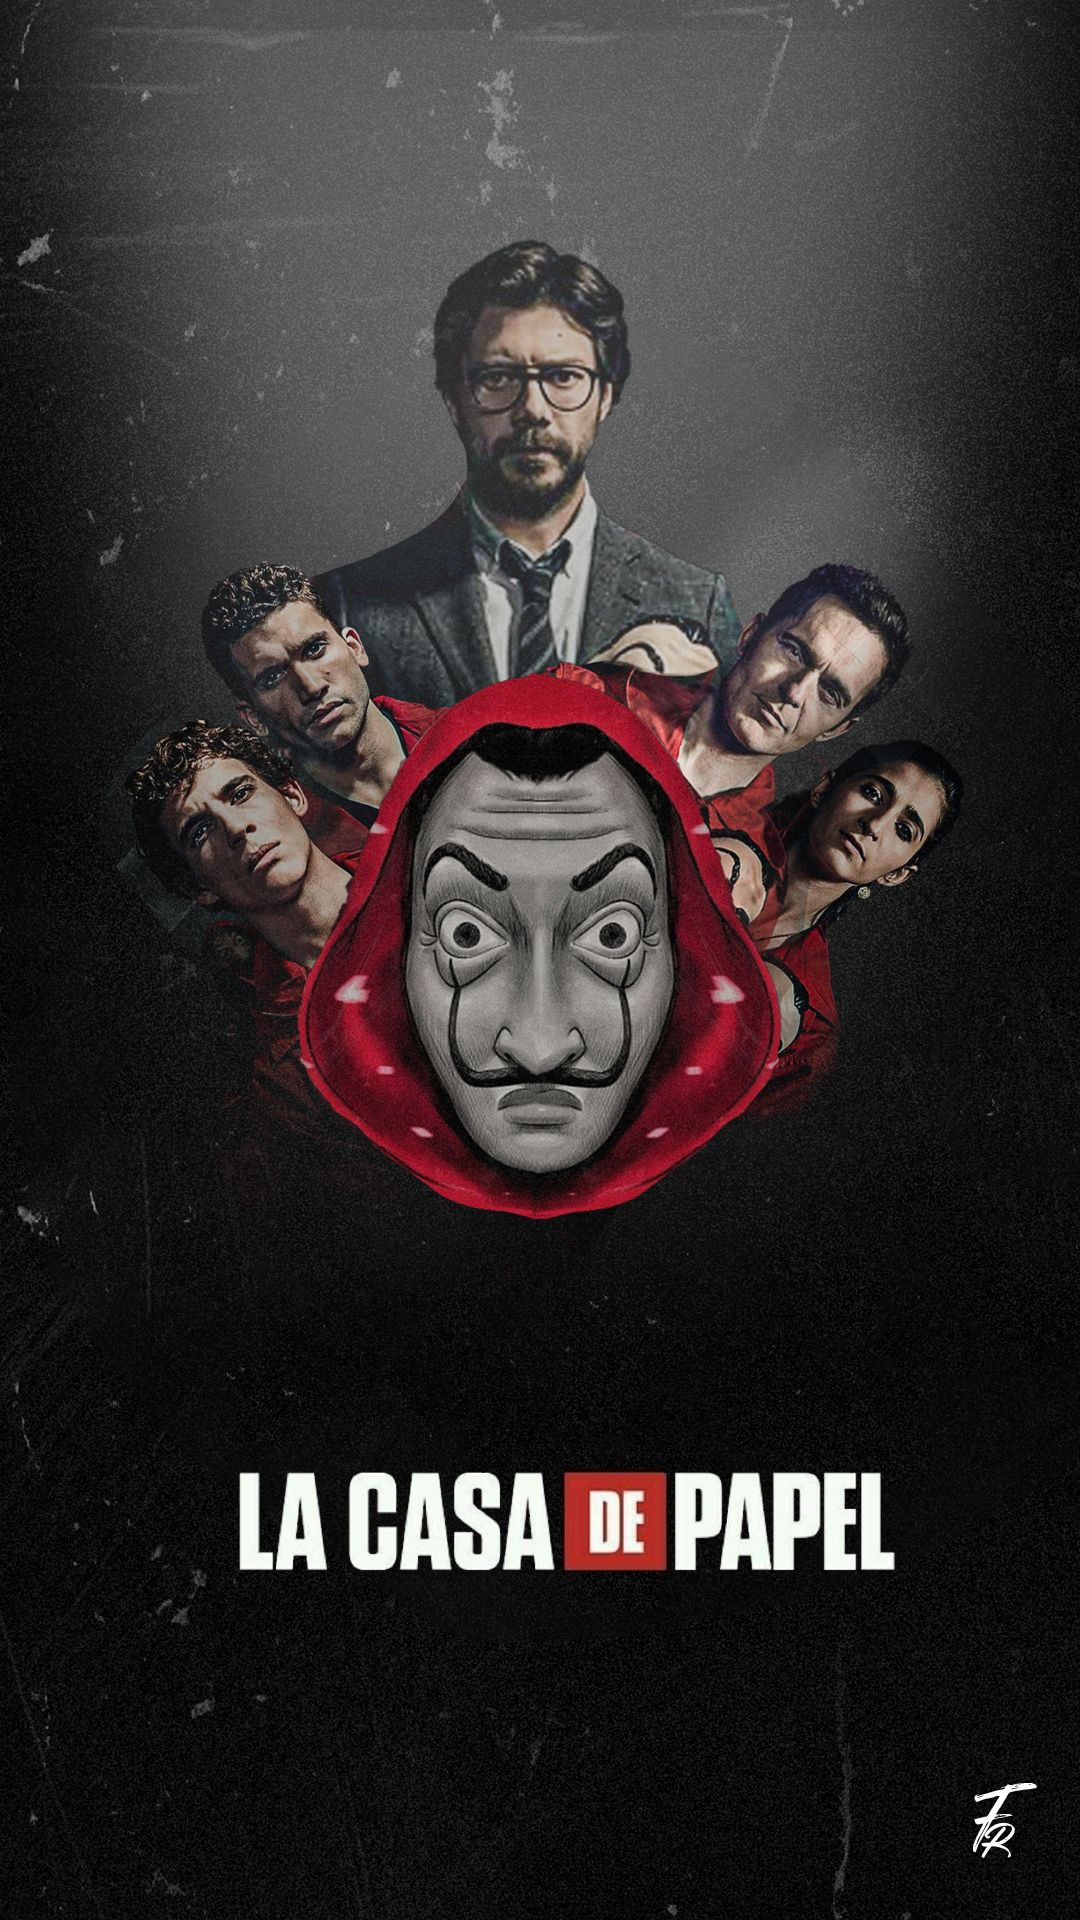 La Casa De Papel A K A Money Heist Mobile Lockscreen And Wallpaper Lacasadepapel Moneyheist Season4 Mh4 M In 2020 Dark Wallpaper Iphone Wallpaper Dark Wallpaper